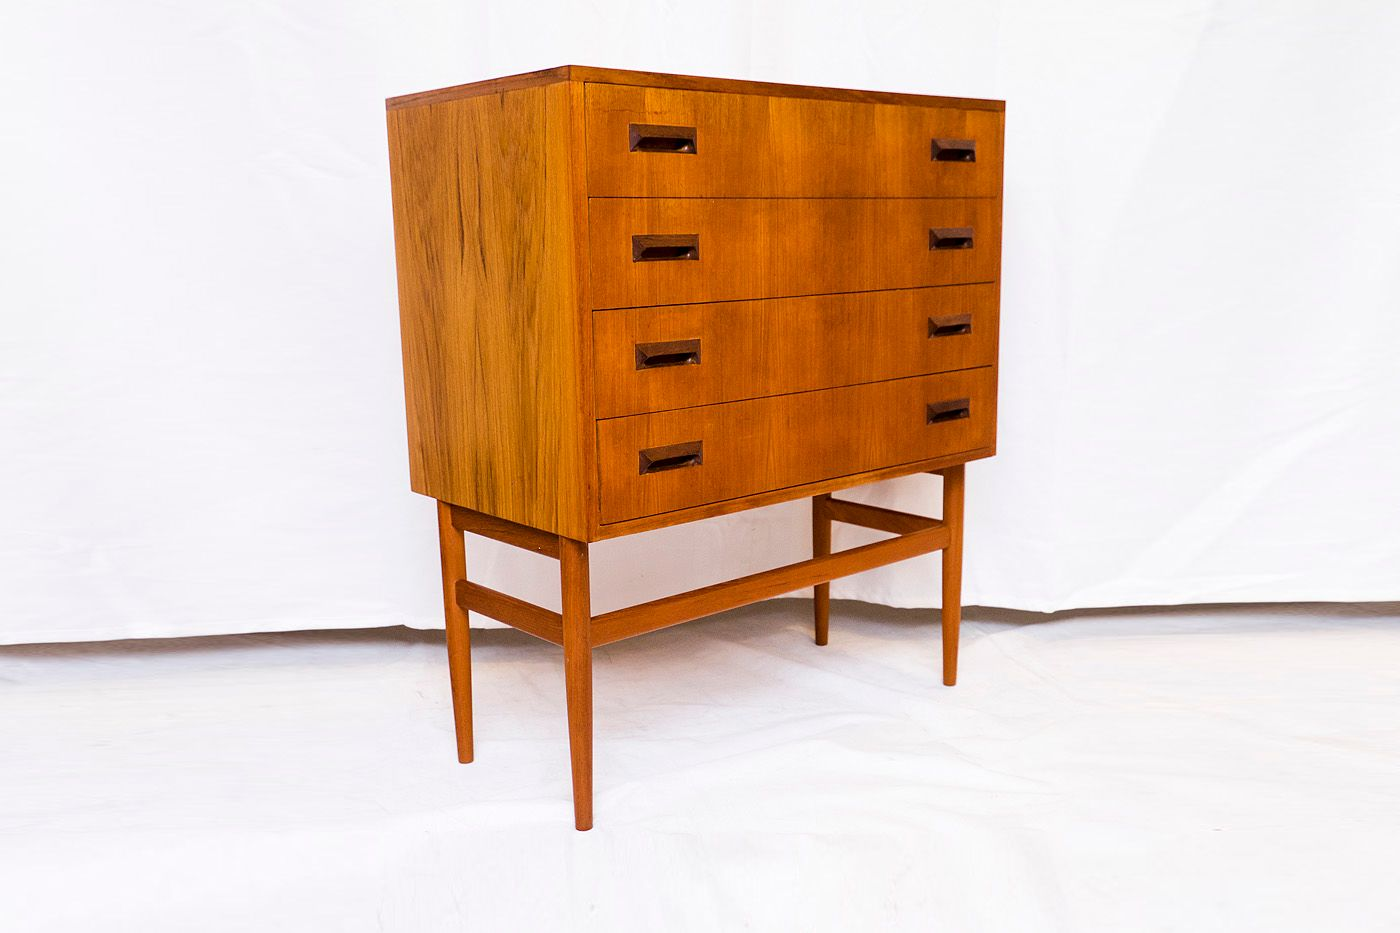 deutsche mid century kommode aus teak 1950er bei pamono kaufen. Black Bedroom Furniture Sets. Home Design Ideas